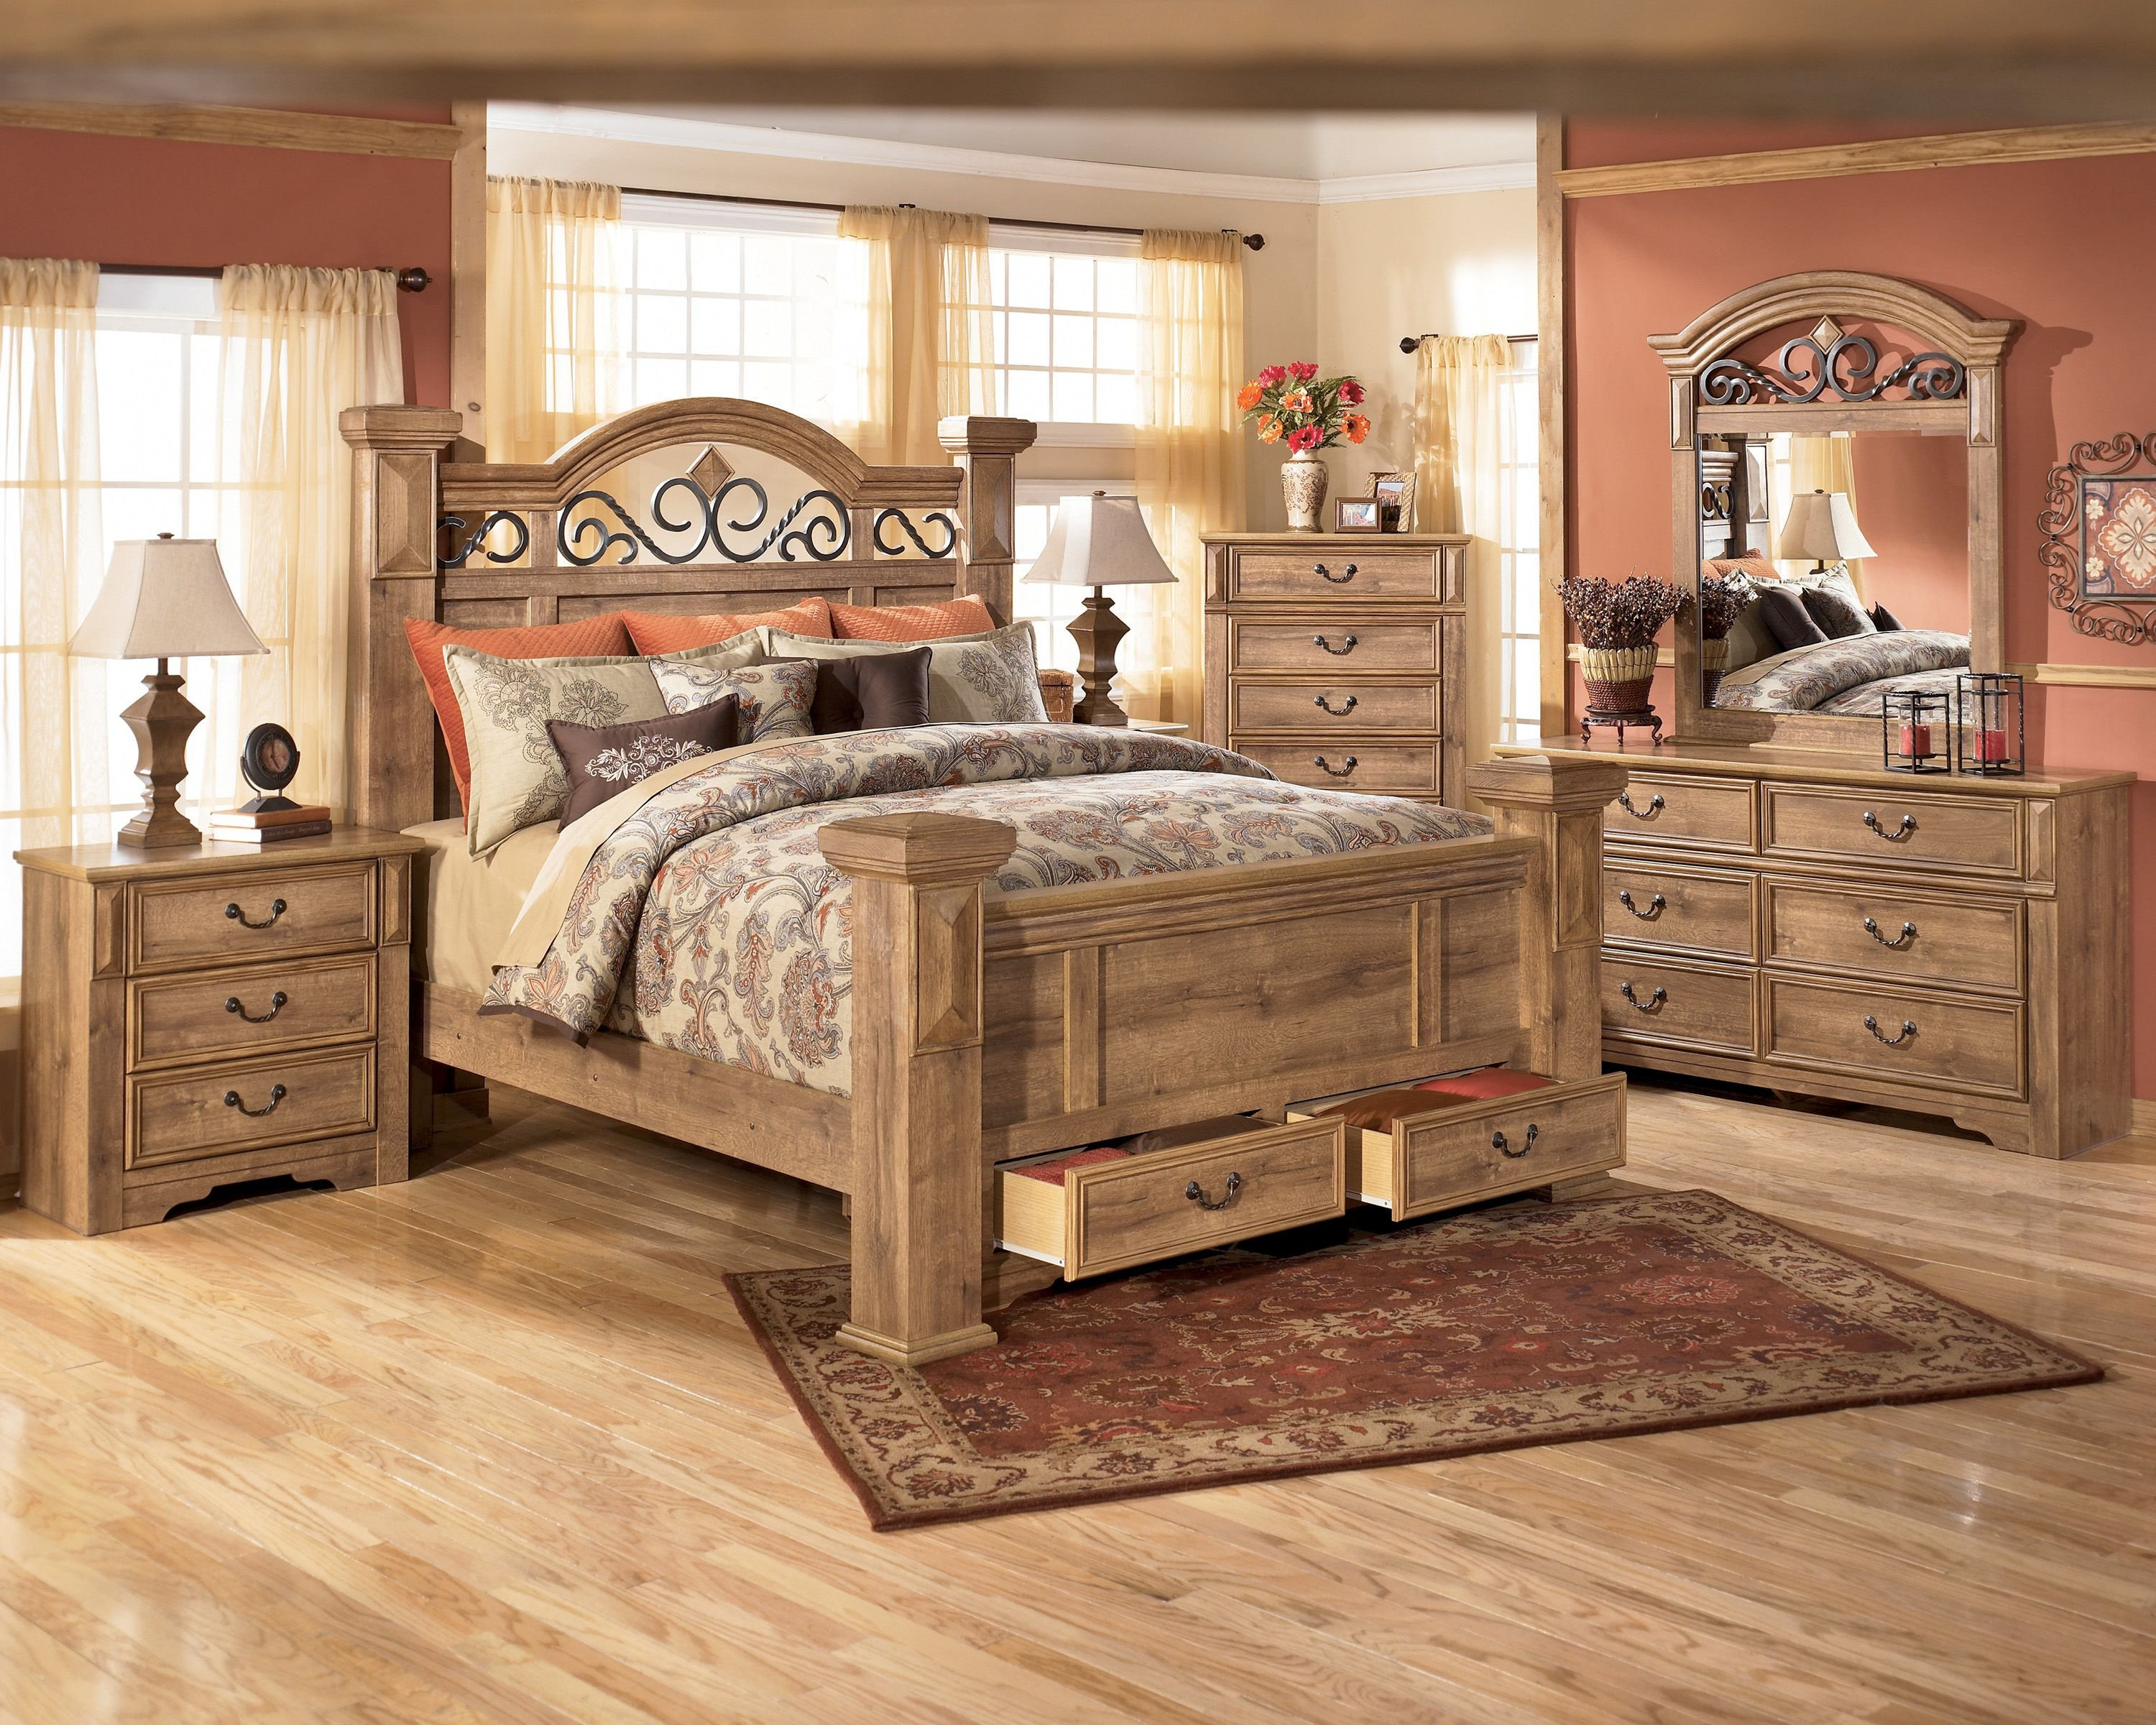 Regency Furniture Bedroom Set Fresh Awesome Awesome Full Size Bed Set 89 Home Decorating